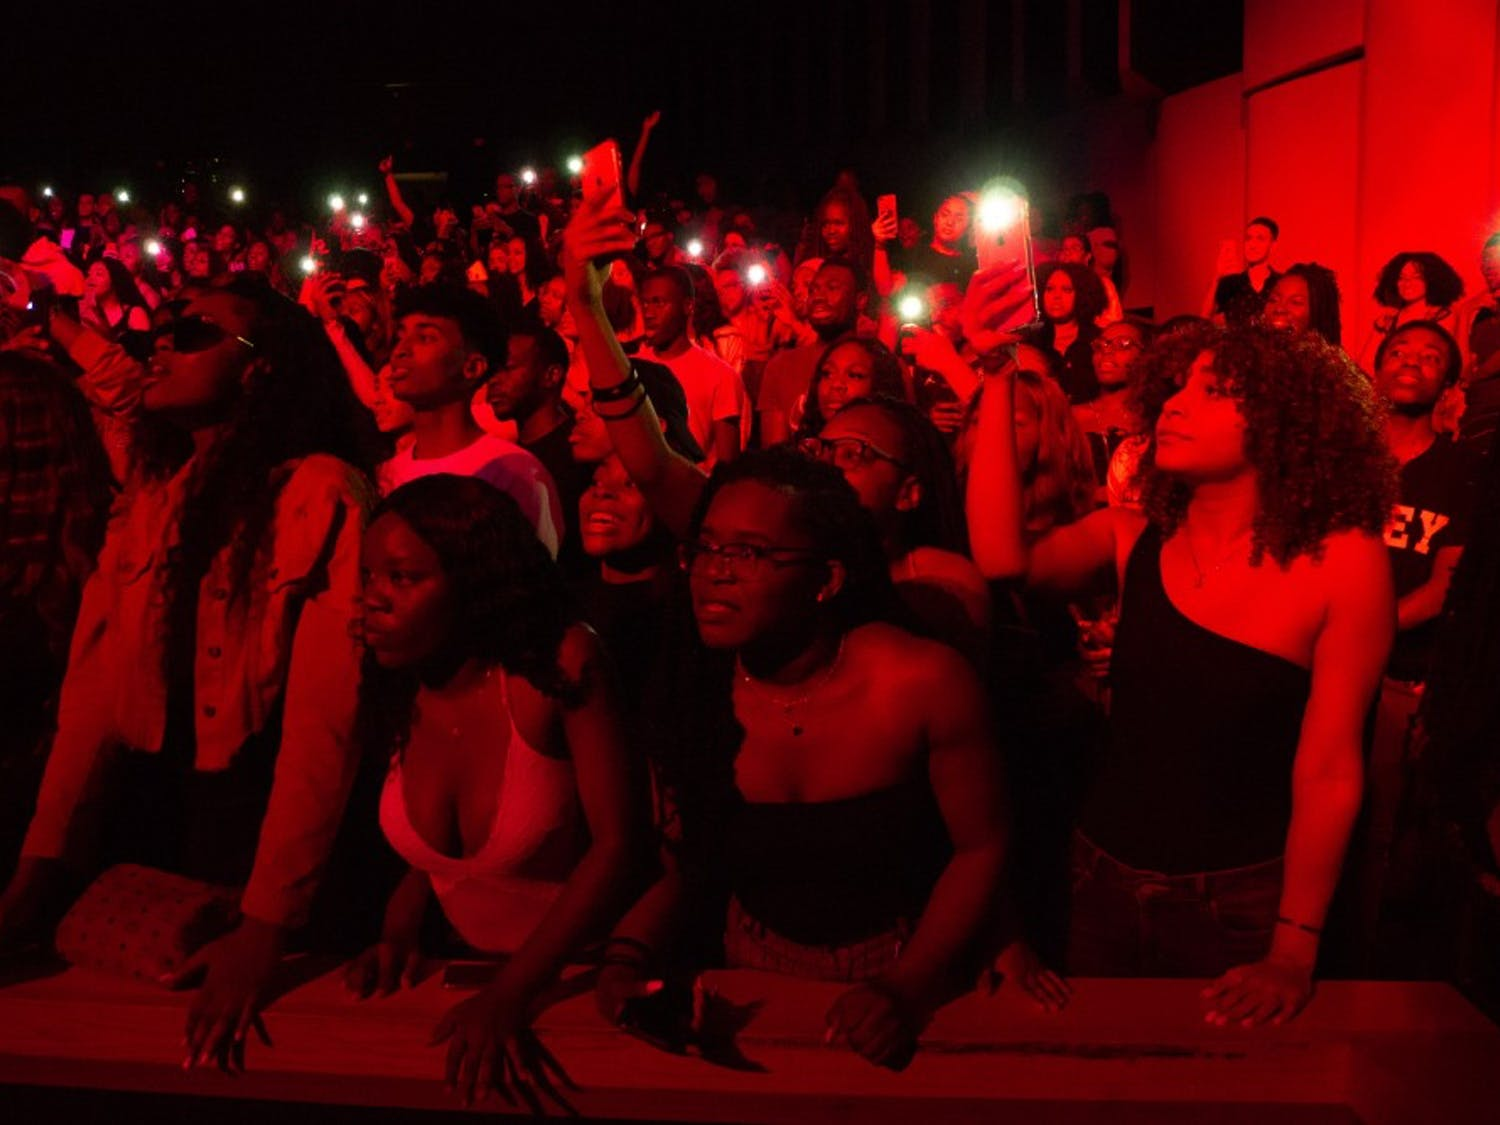 Audience members light up their phones as they sing along to Kranium.